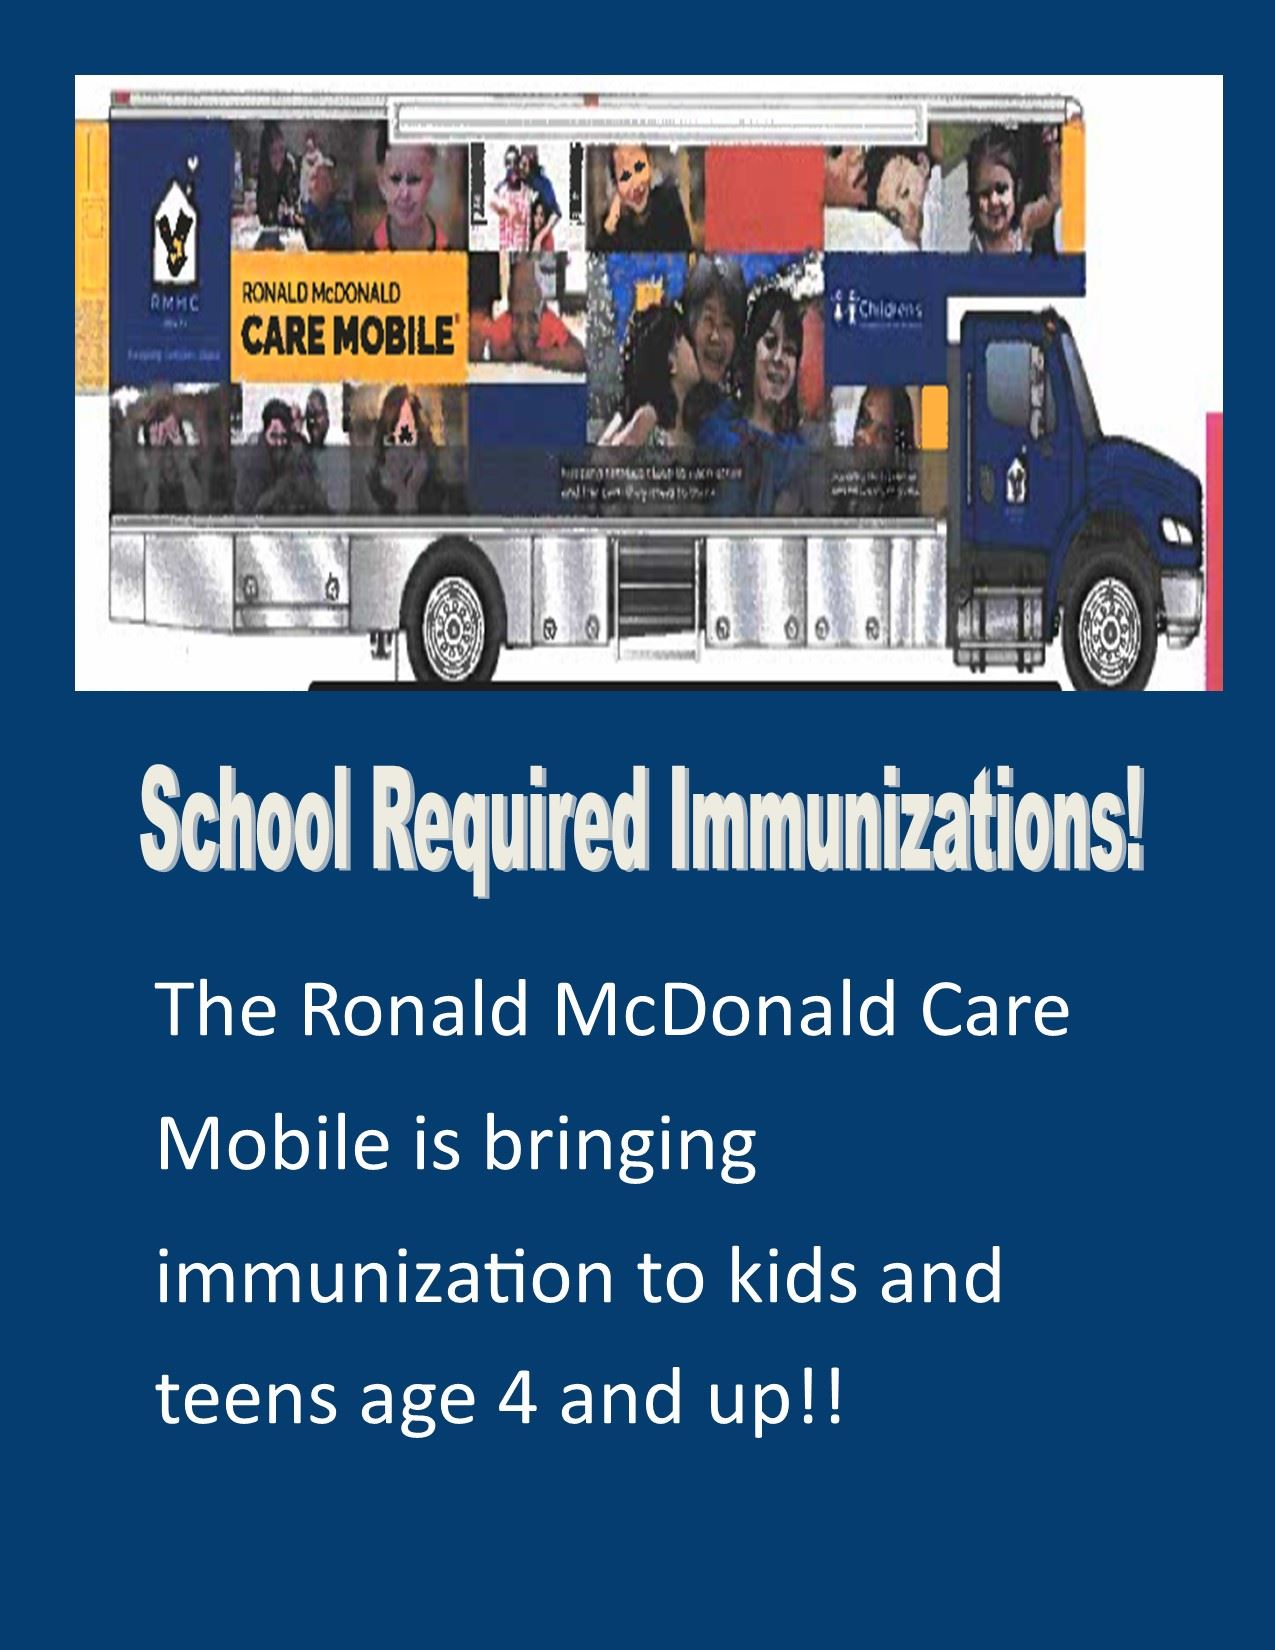 School Required Immunizations! The Ronald McDonald Care Mobile is bringing immunization to kids and teens age 4 and up!!